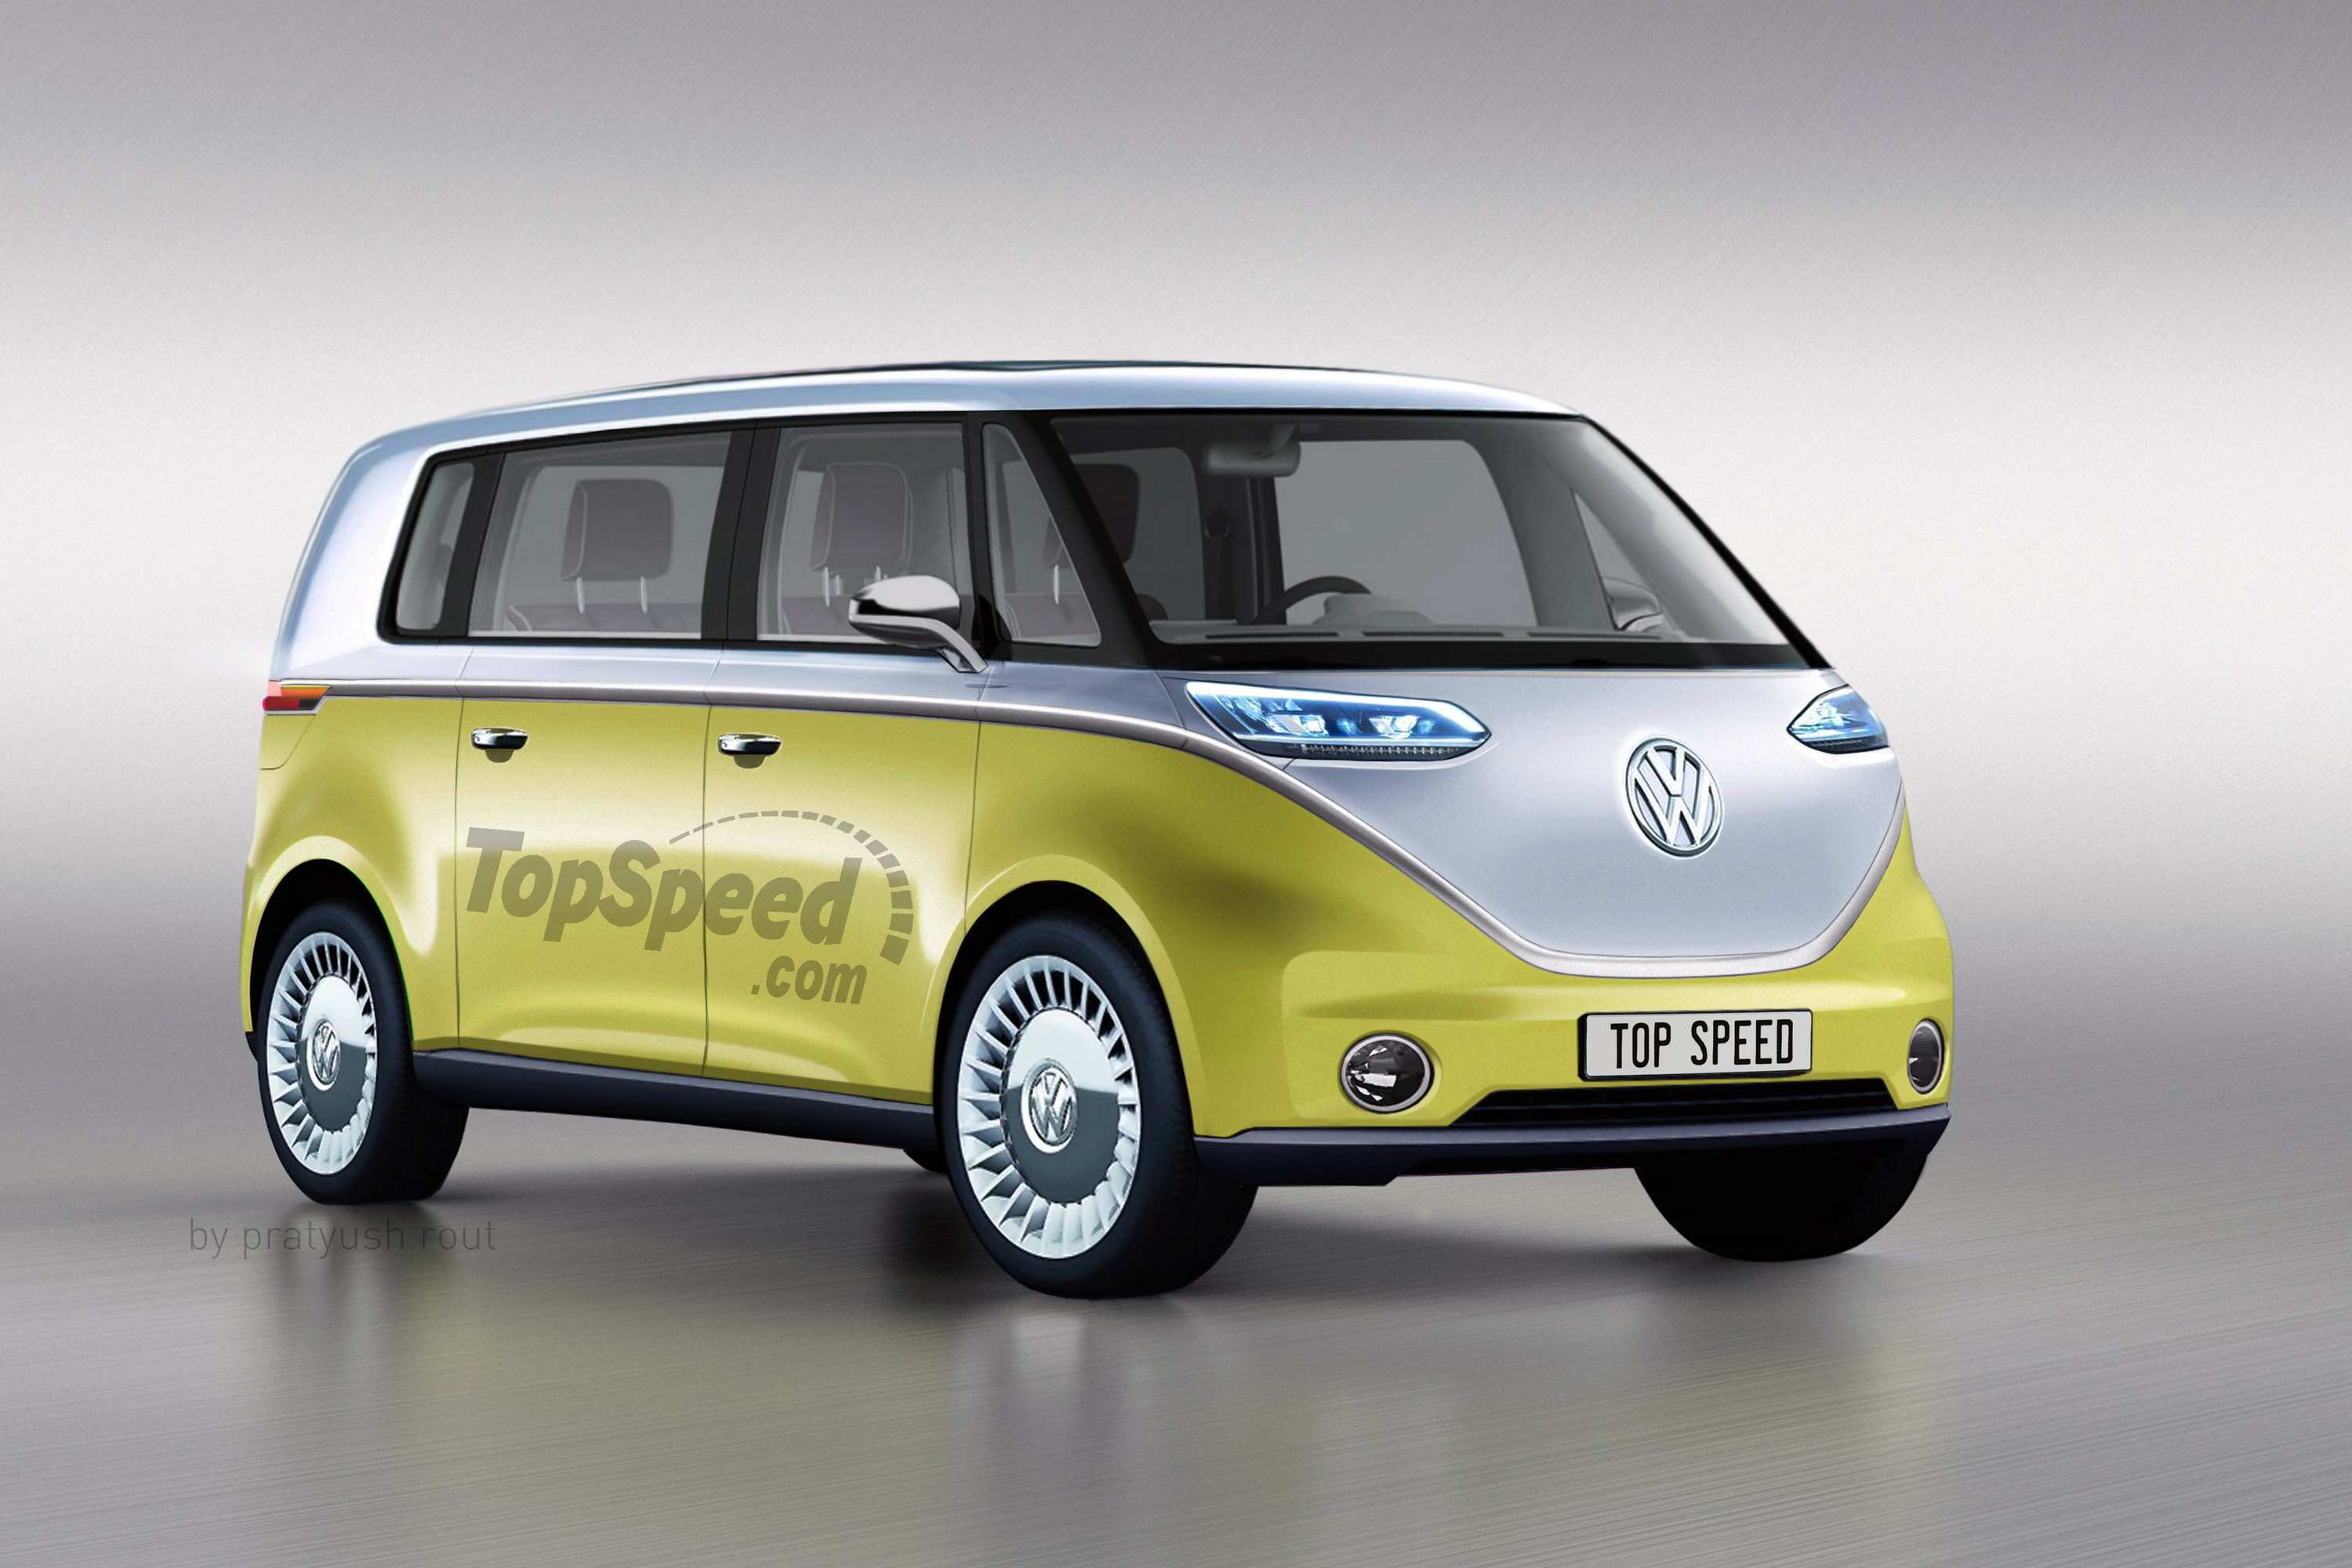 65 New Volkswagen Minivan 2020 Spy Shoot for Volkswagen Minivan 2020